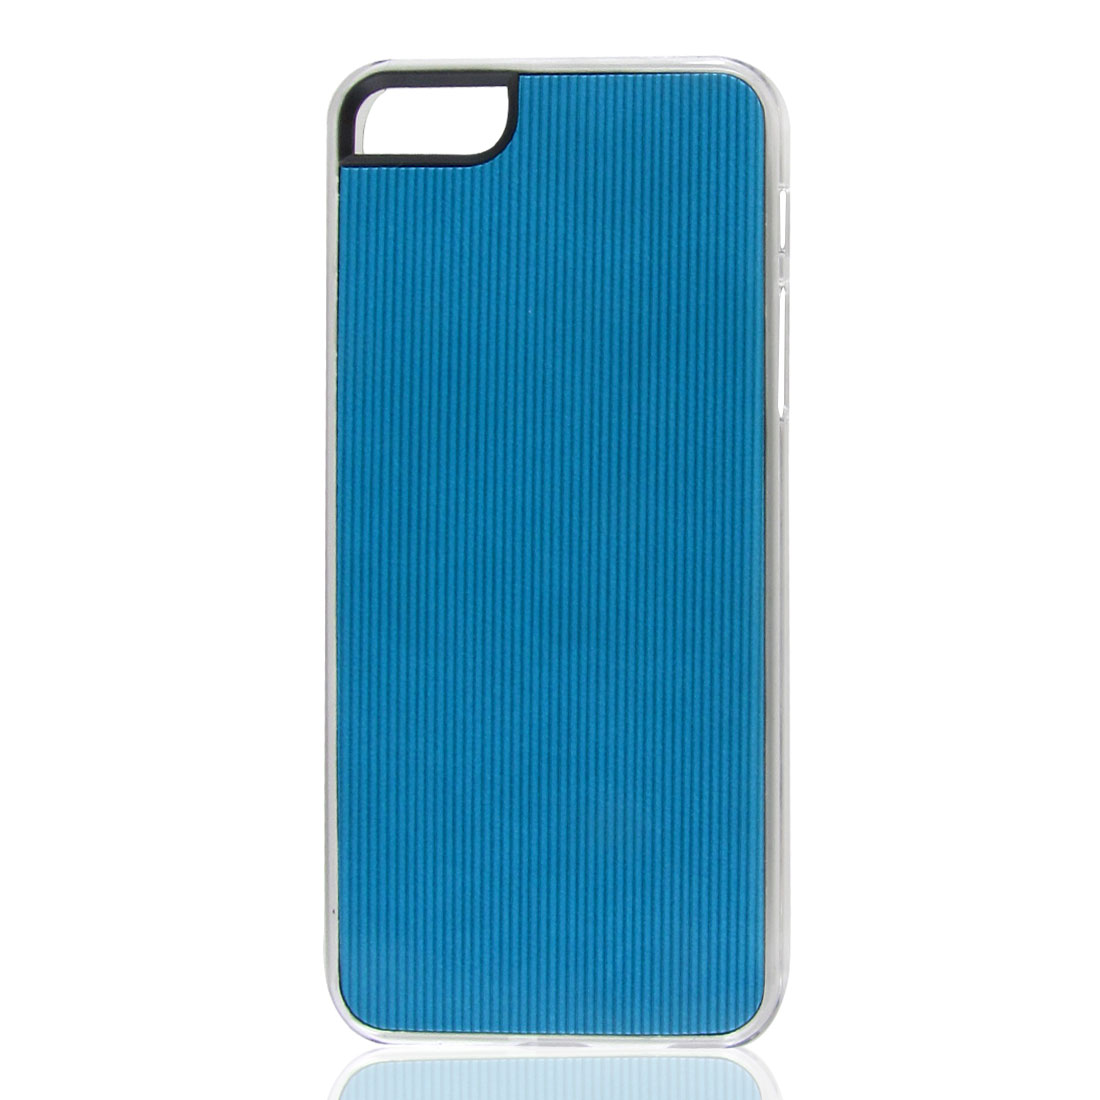 Teal Blue Faux Leather Coated Pinstripe Hard Back Case Cover for iPhone 5 5G 5th